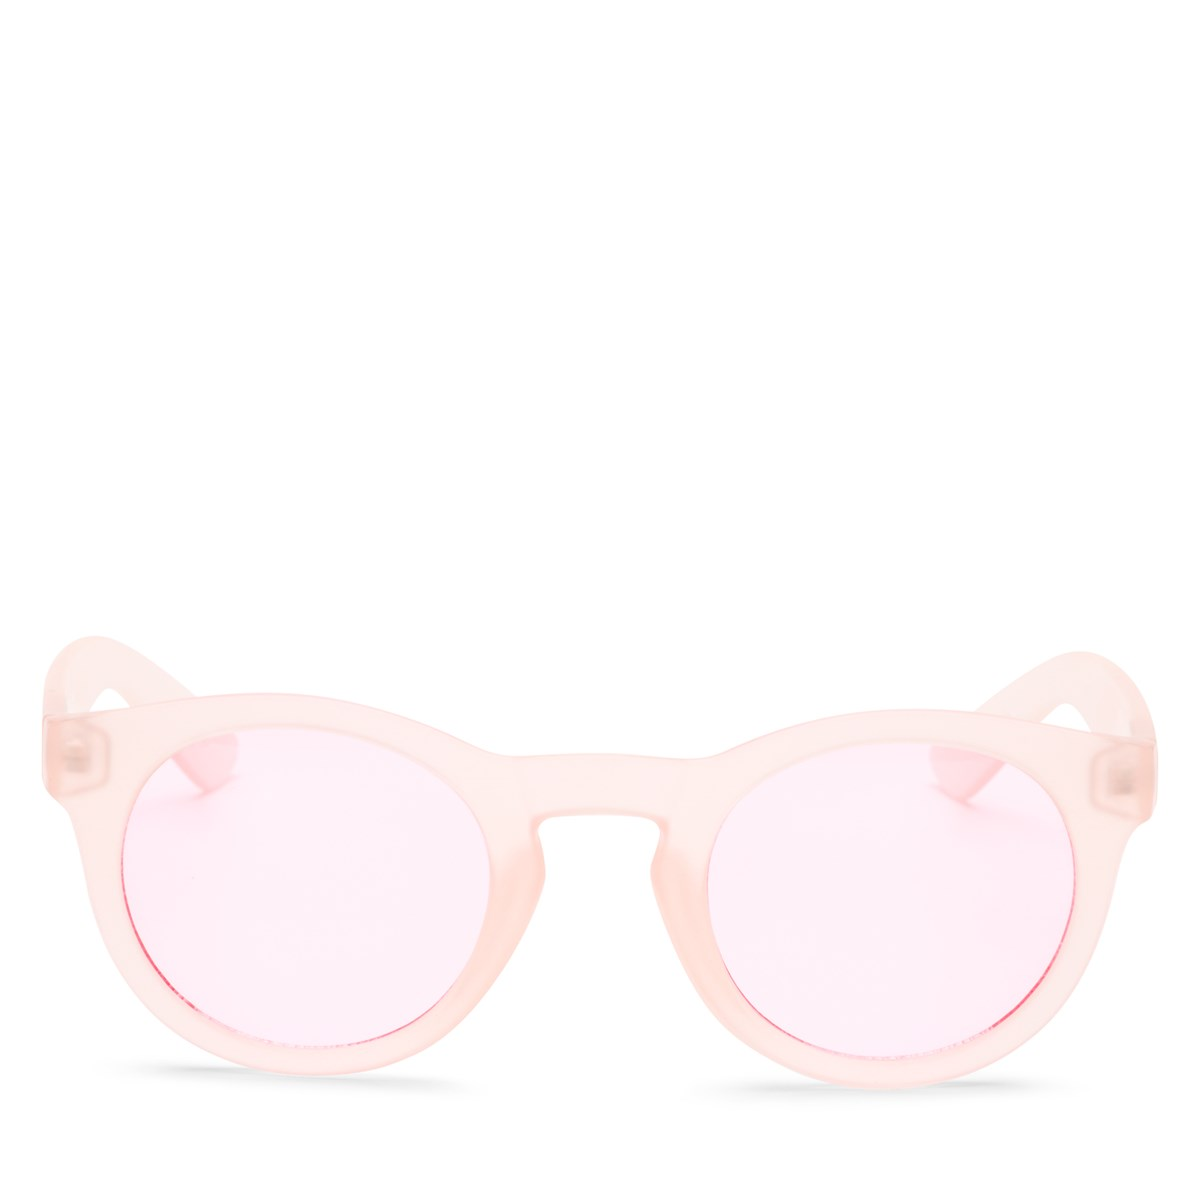 Lolligagger Sunglasses in Pink